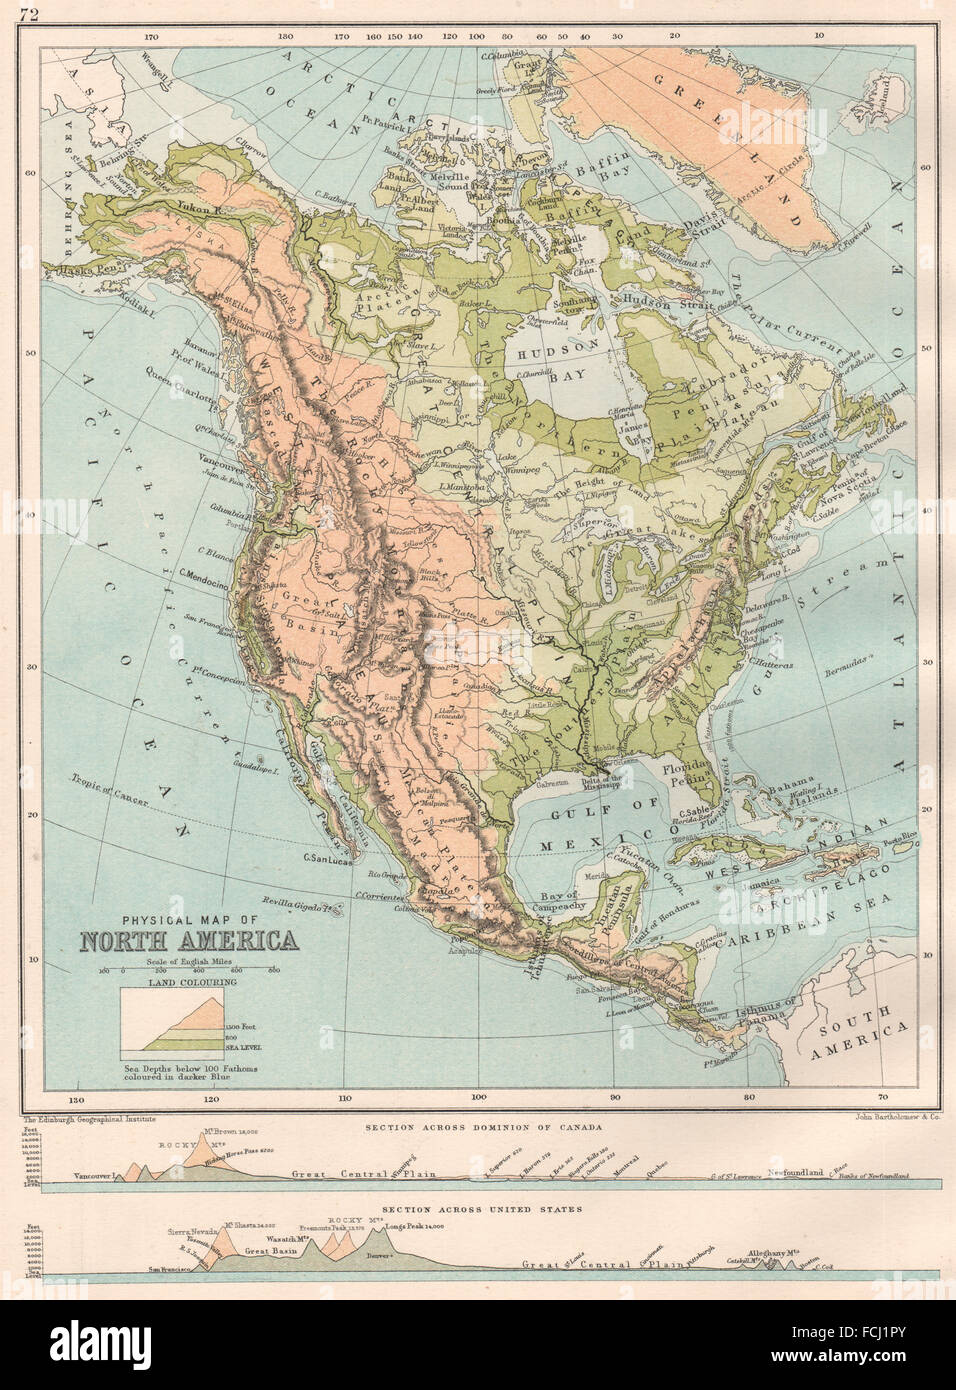 NORTH AMERICA PHYSICAL: Sections across the United States ...